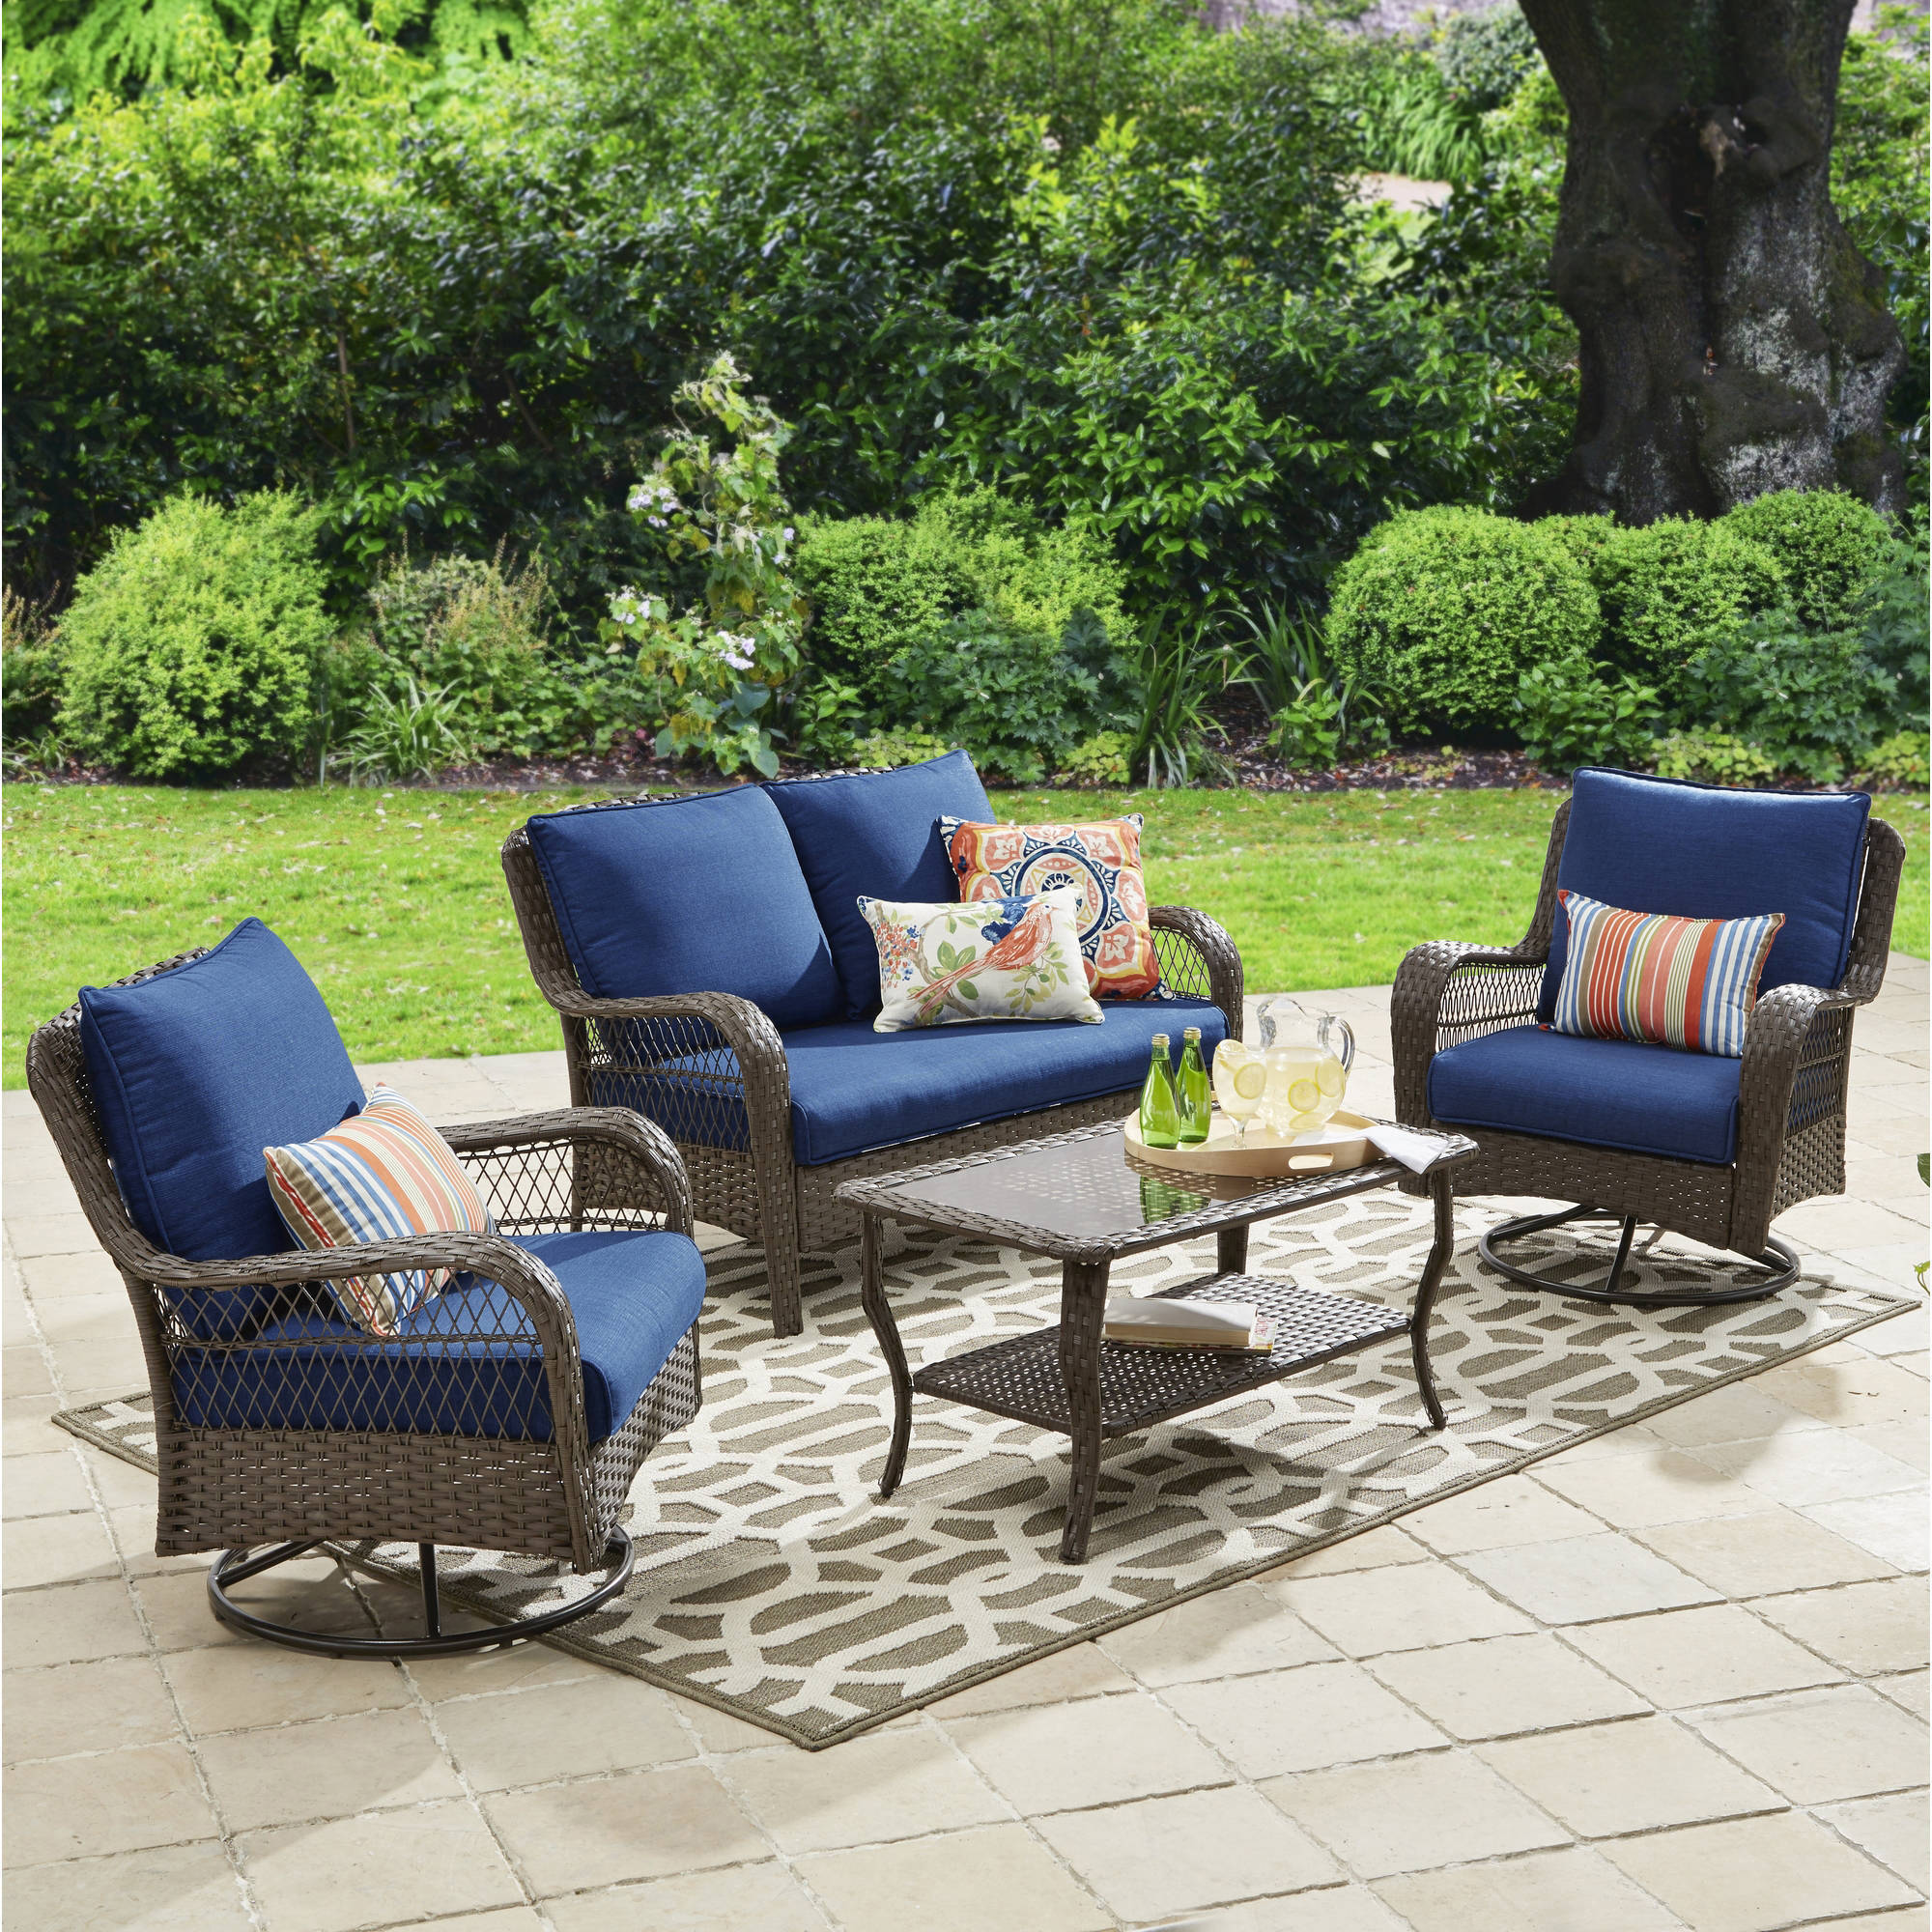 Better Homes and Gardens Colebrook 4 Piece Outdoor Conversation Set -  Walmart.com